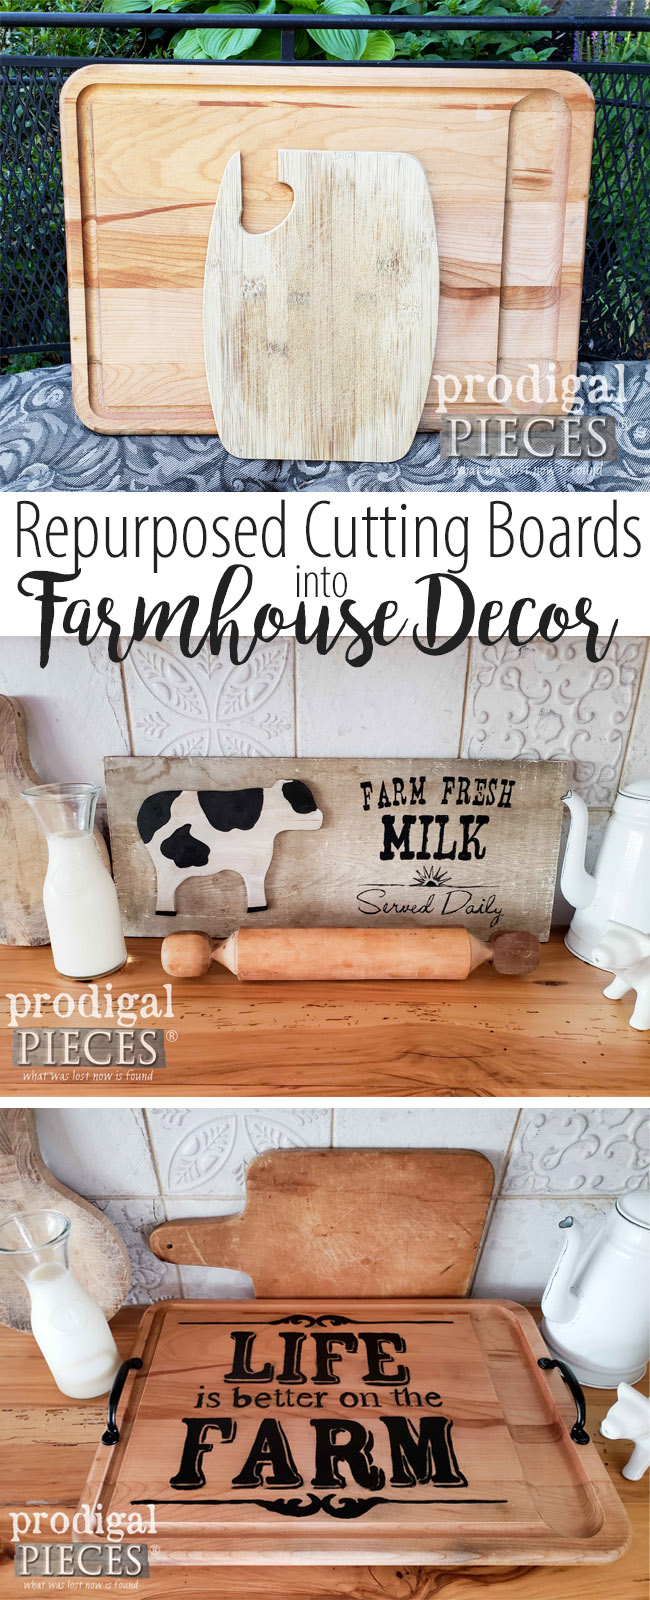 Don't toss out those old cutting boards. See how Larissa of Prodigal Pieces took these repurposed cutting boards a whole new life. See the details at prodigalpieces.com #prodigalpieces #trashure #farmhouse #homedecor